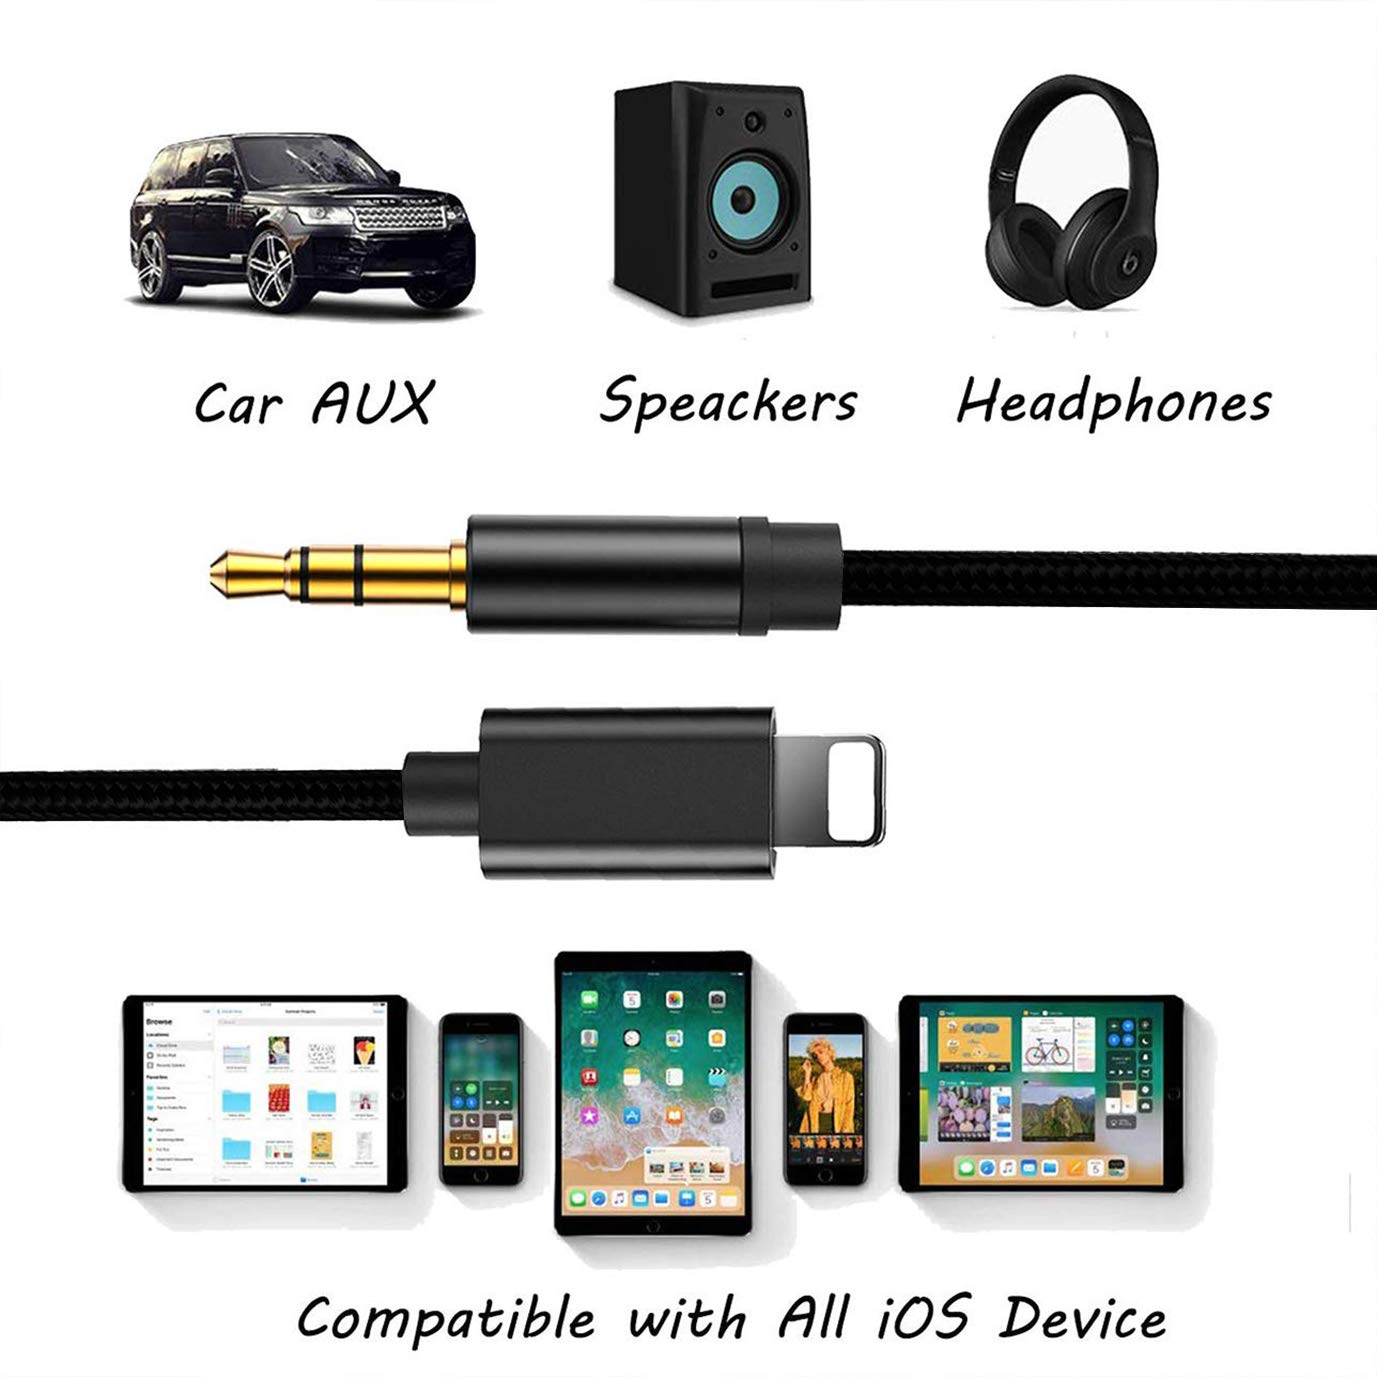 Cable Jack 3.5 mm Macho para iPhone Cable Auxiliar Coche para Auriculares Negro